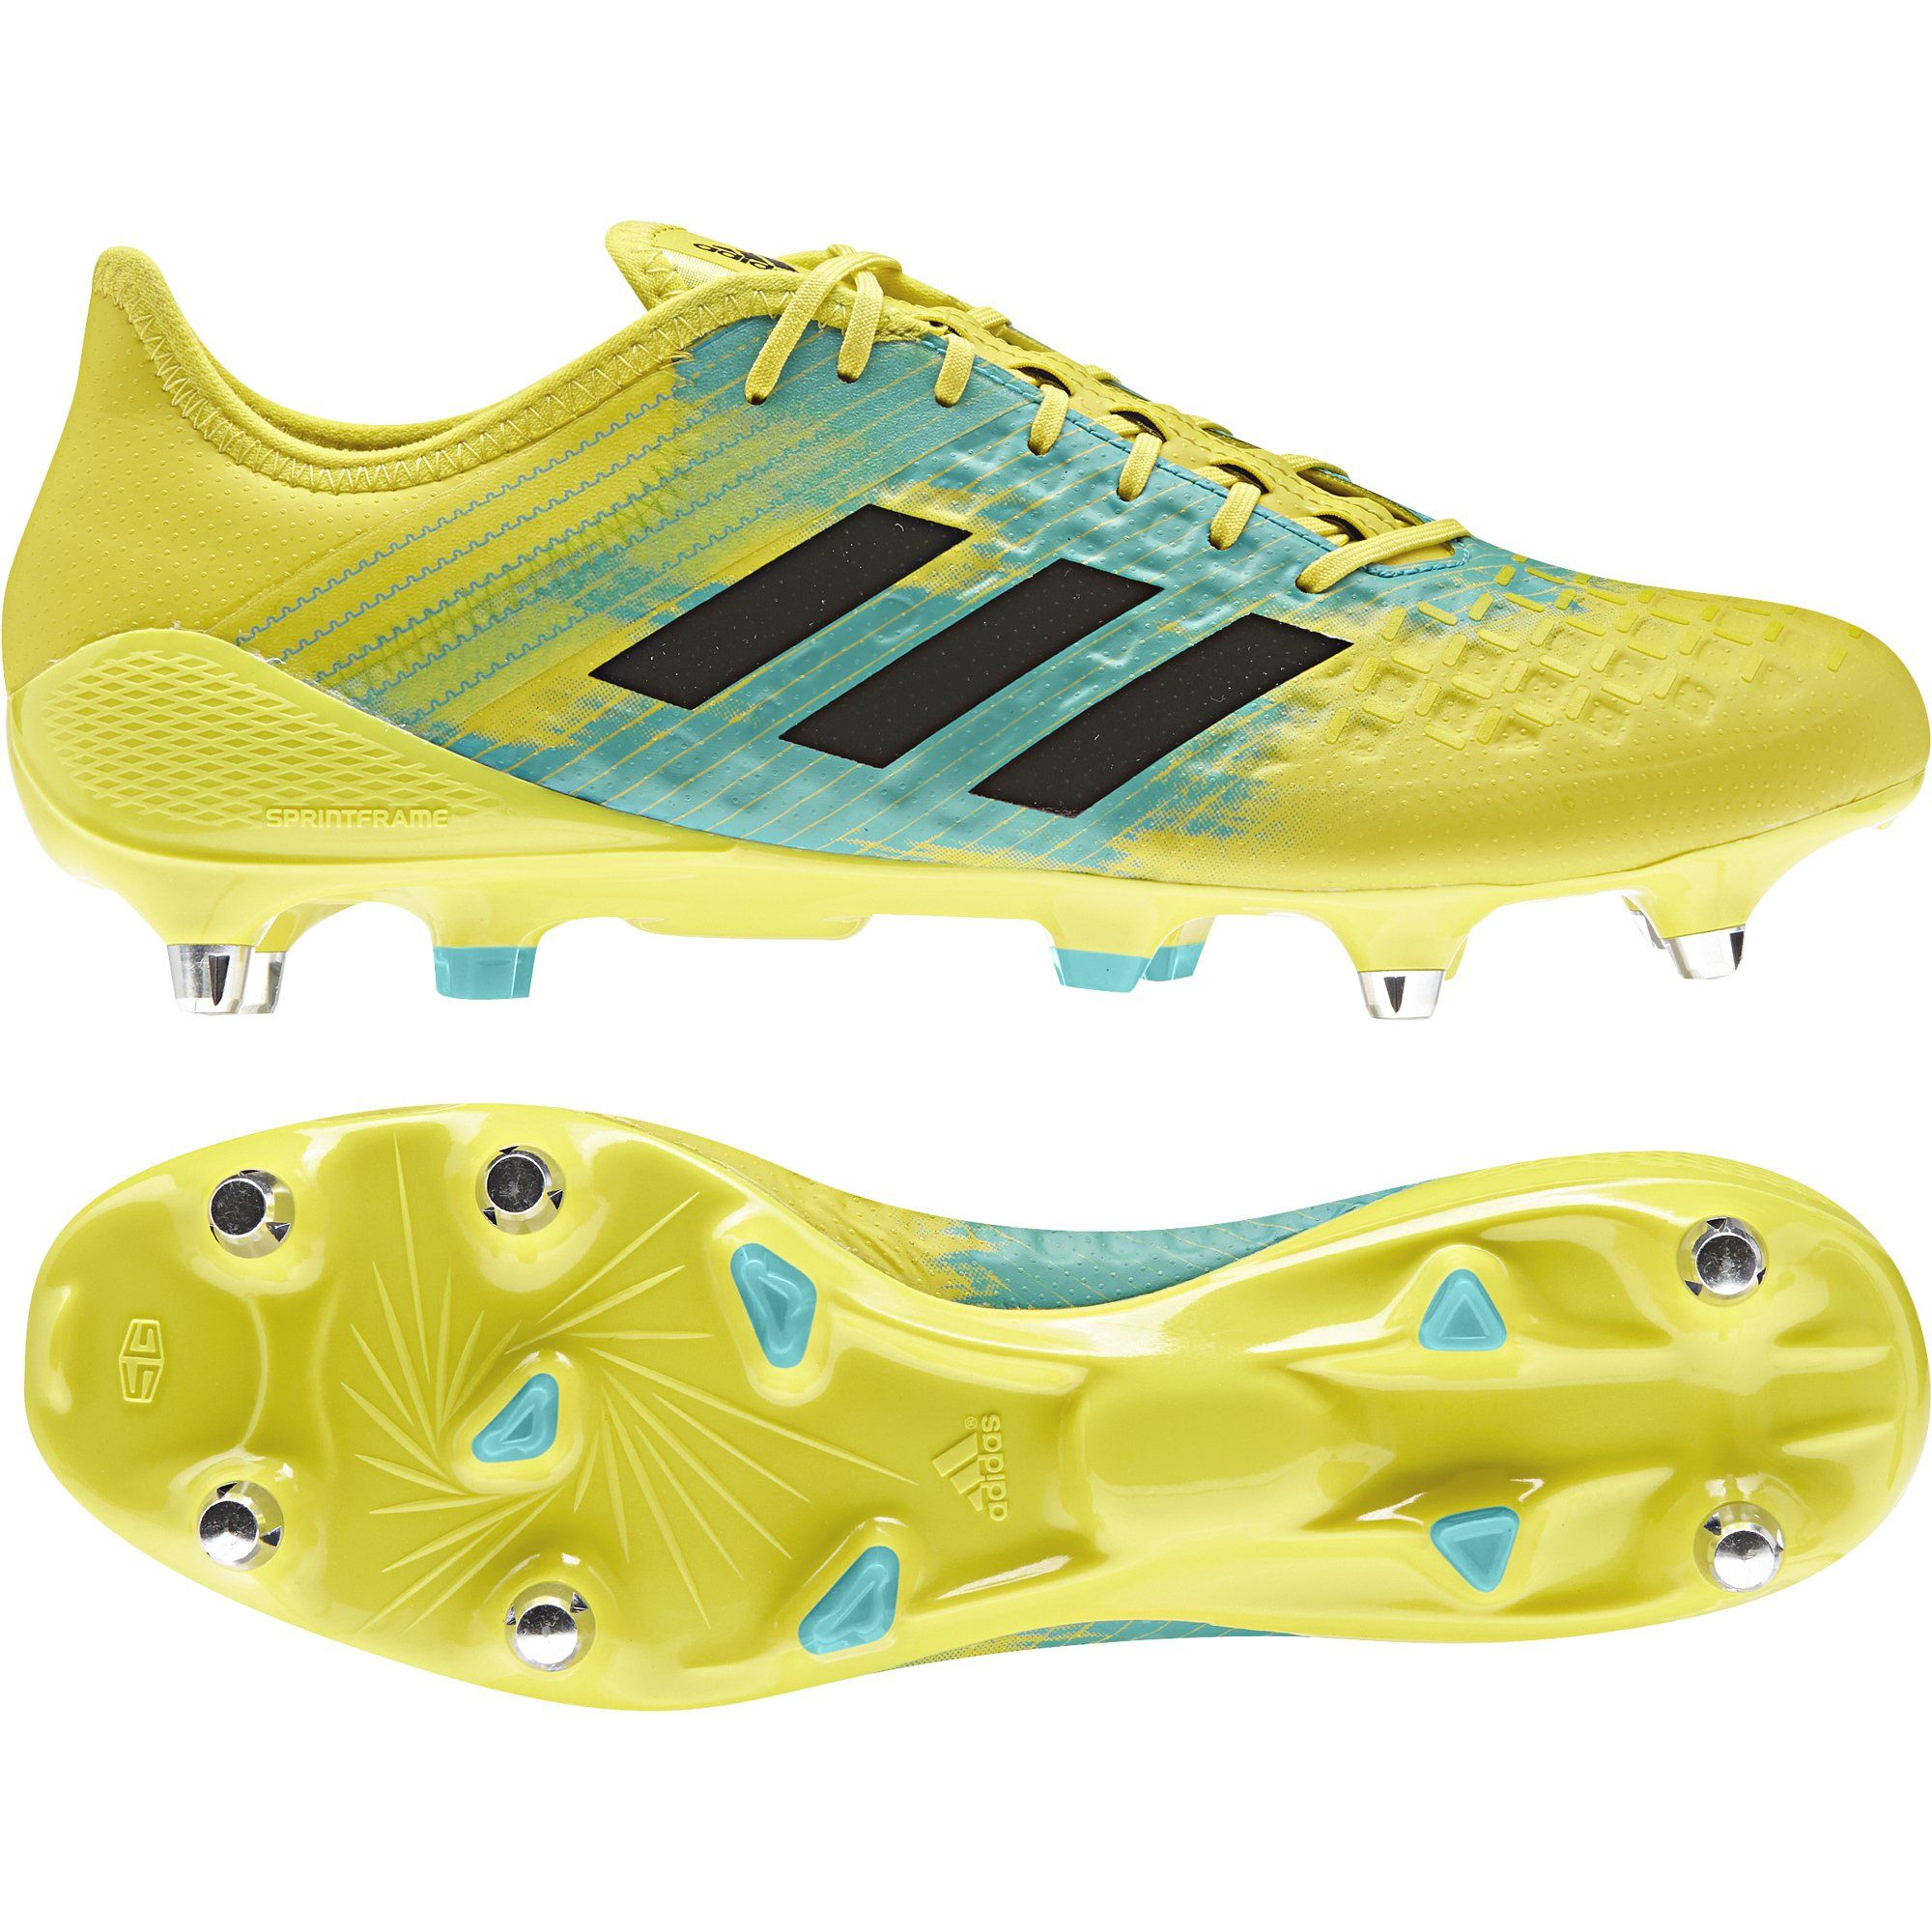 shopping size 7 amazing price Adidas Predator Malice Control SG Rugby Boots Yellow ...